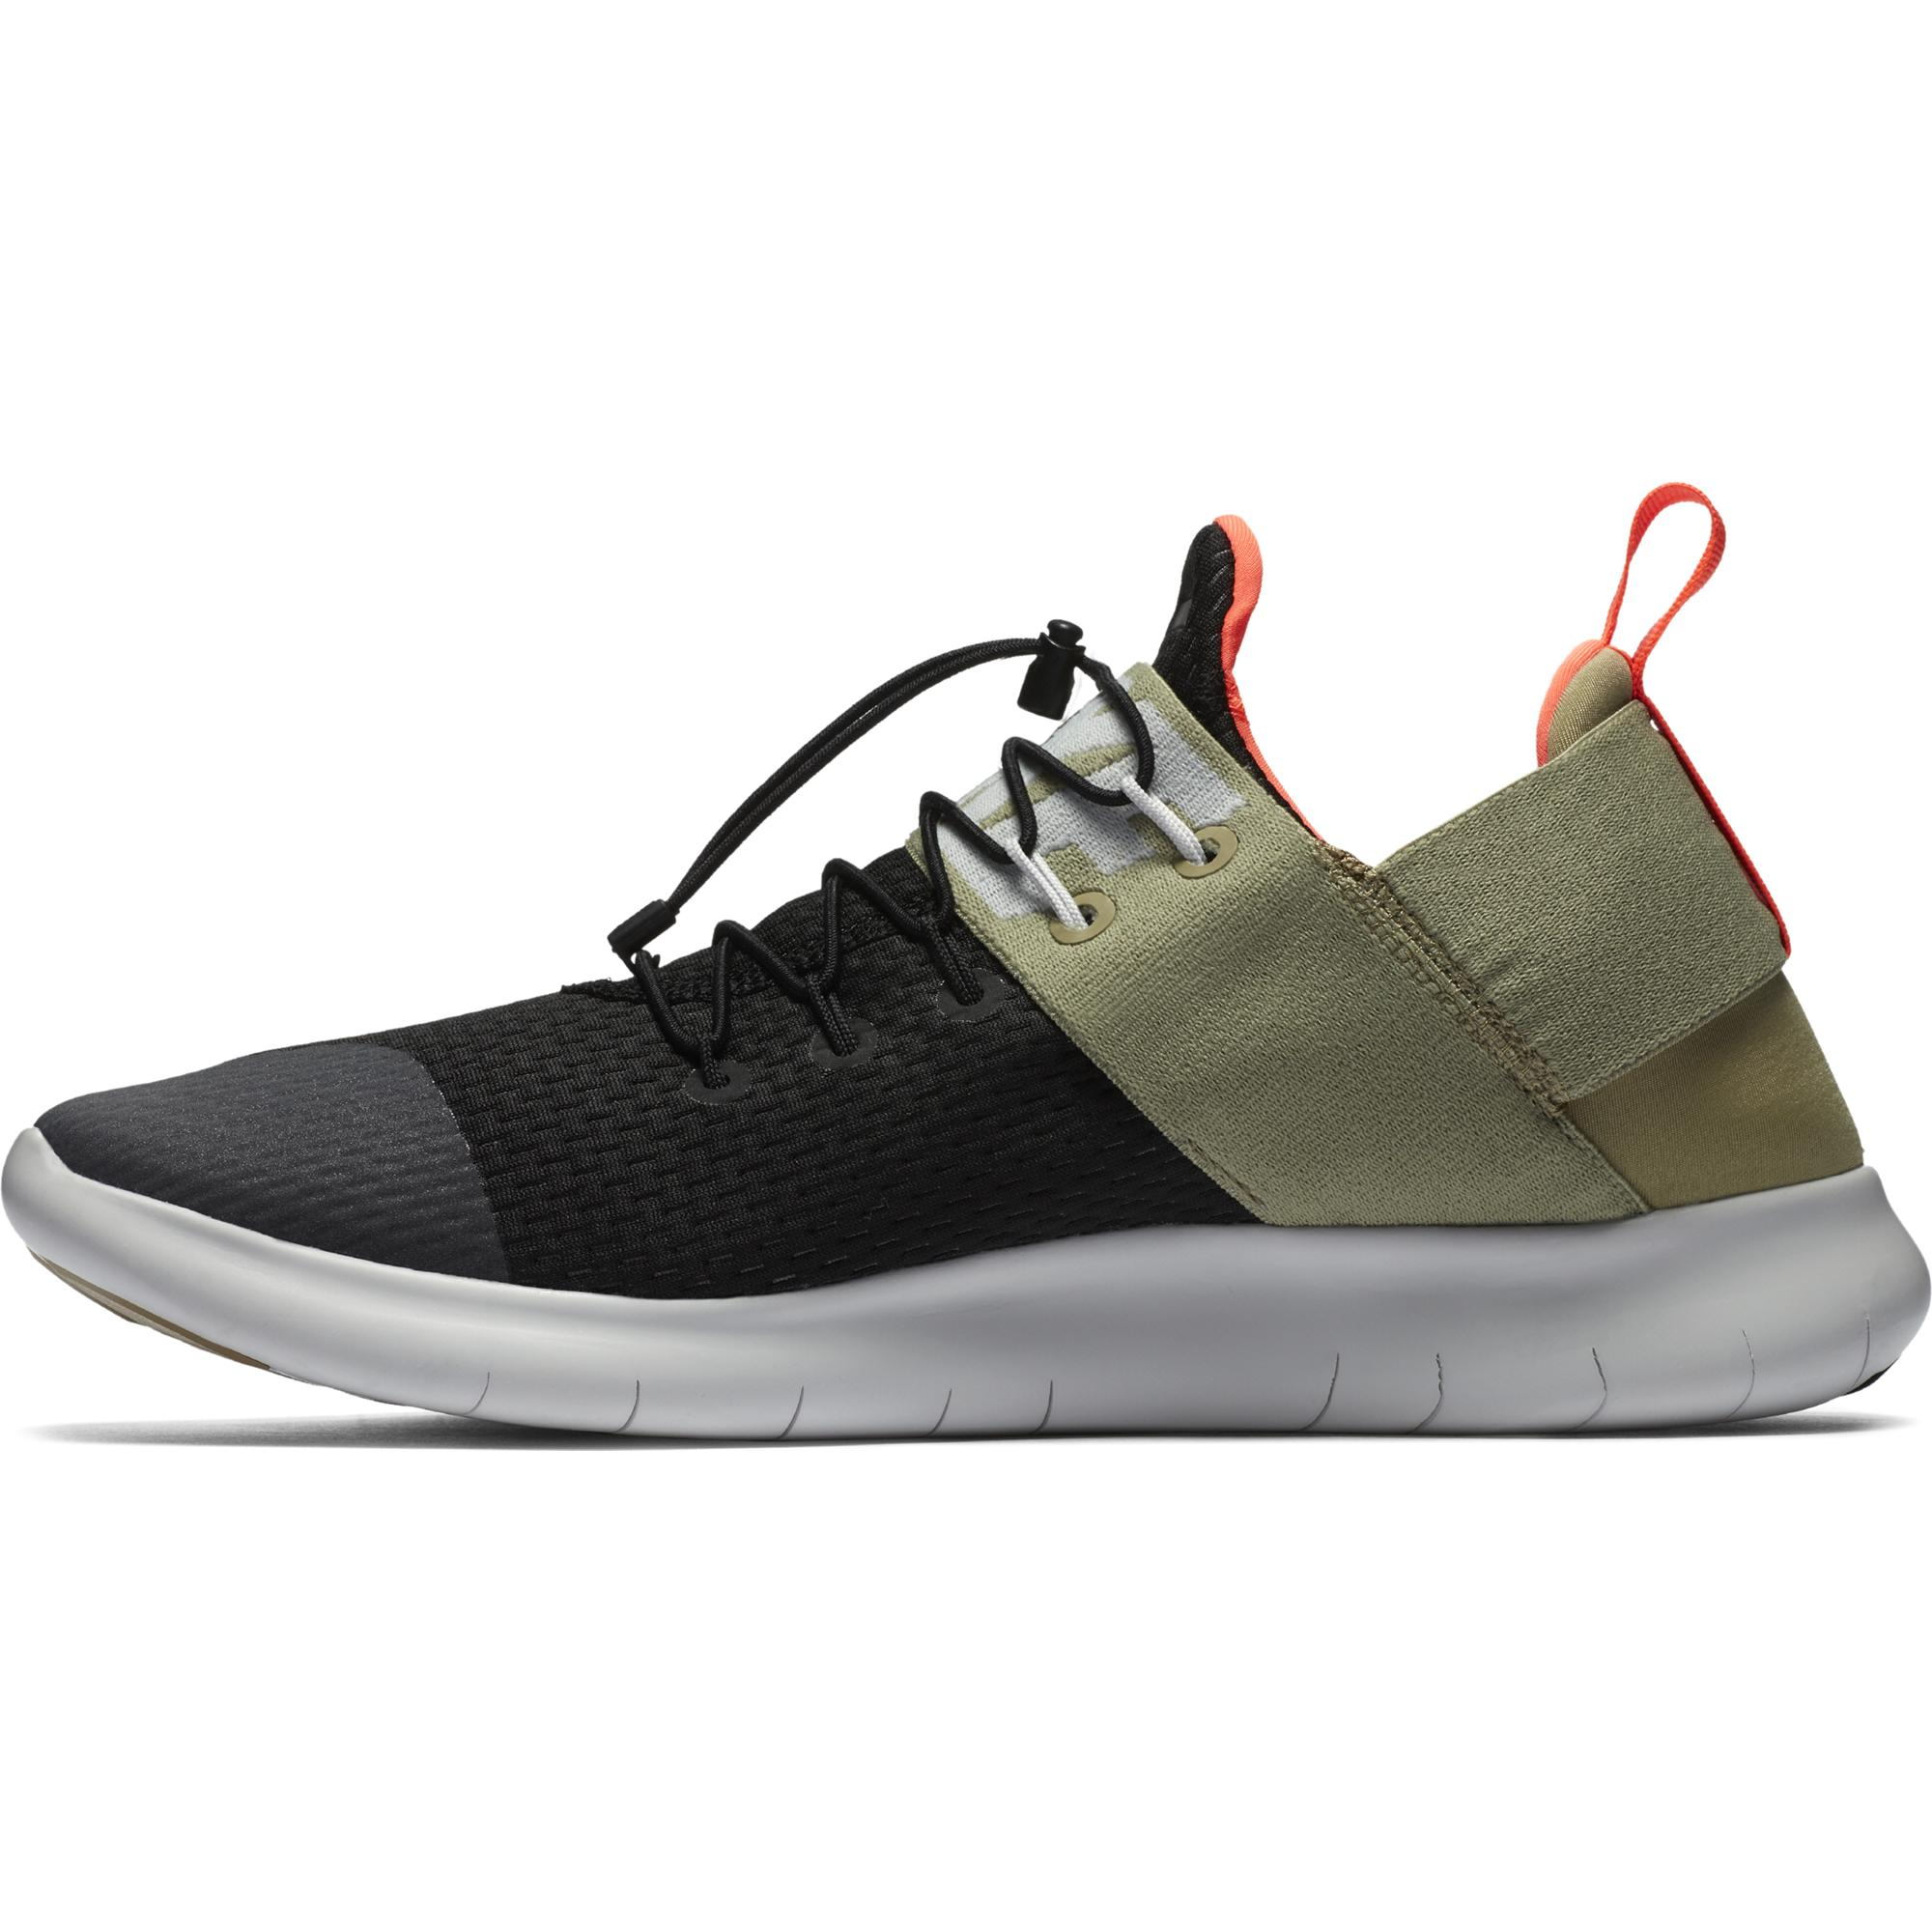 436959cfd47ae Nike Shoes Free Rn Commuter 2017 Black vast Grey-neutral Olive ...